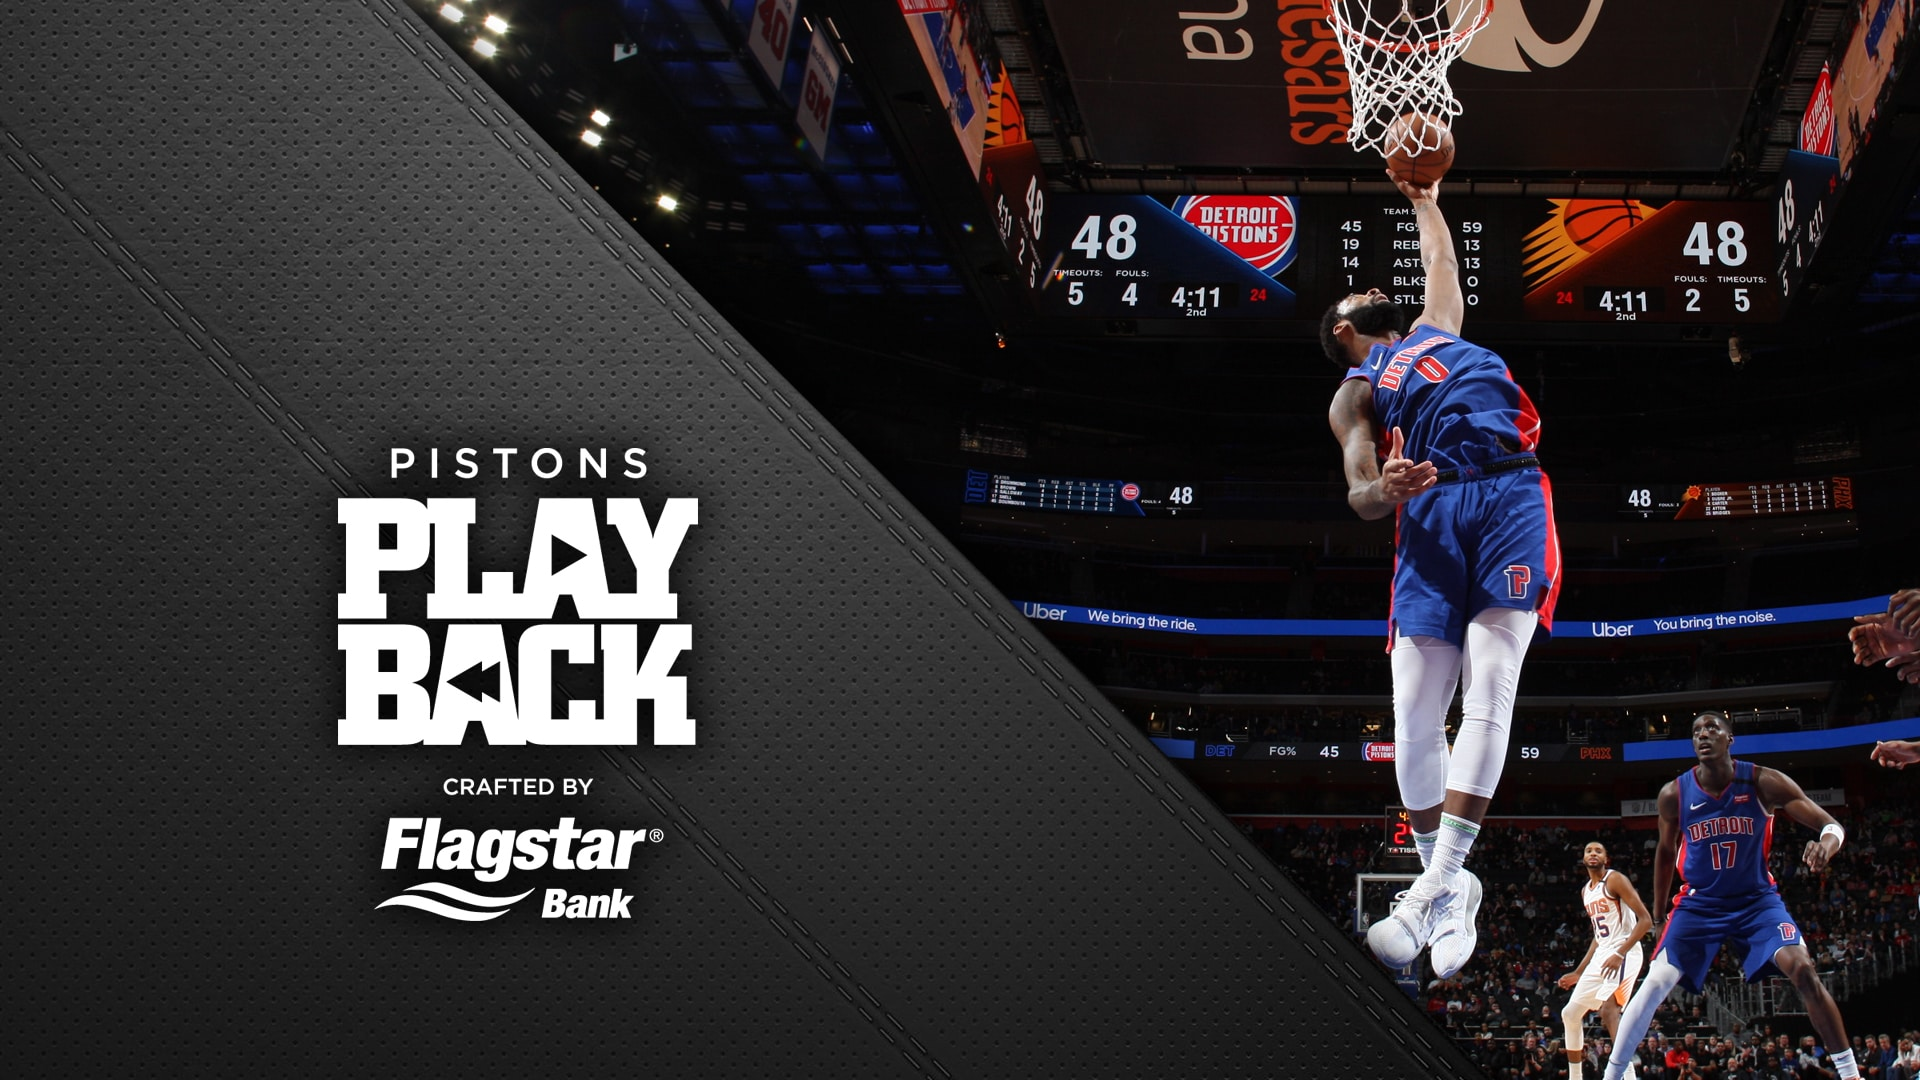 Drummond leads Pistons to victory | Pistons Playback, crafted by Flagstar: Pistons vs Suns